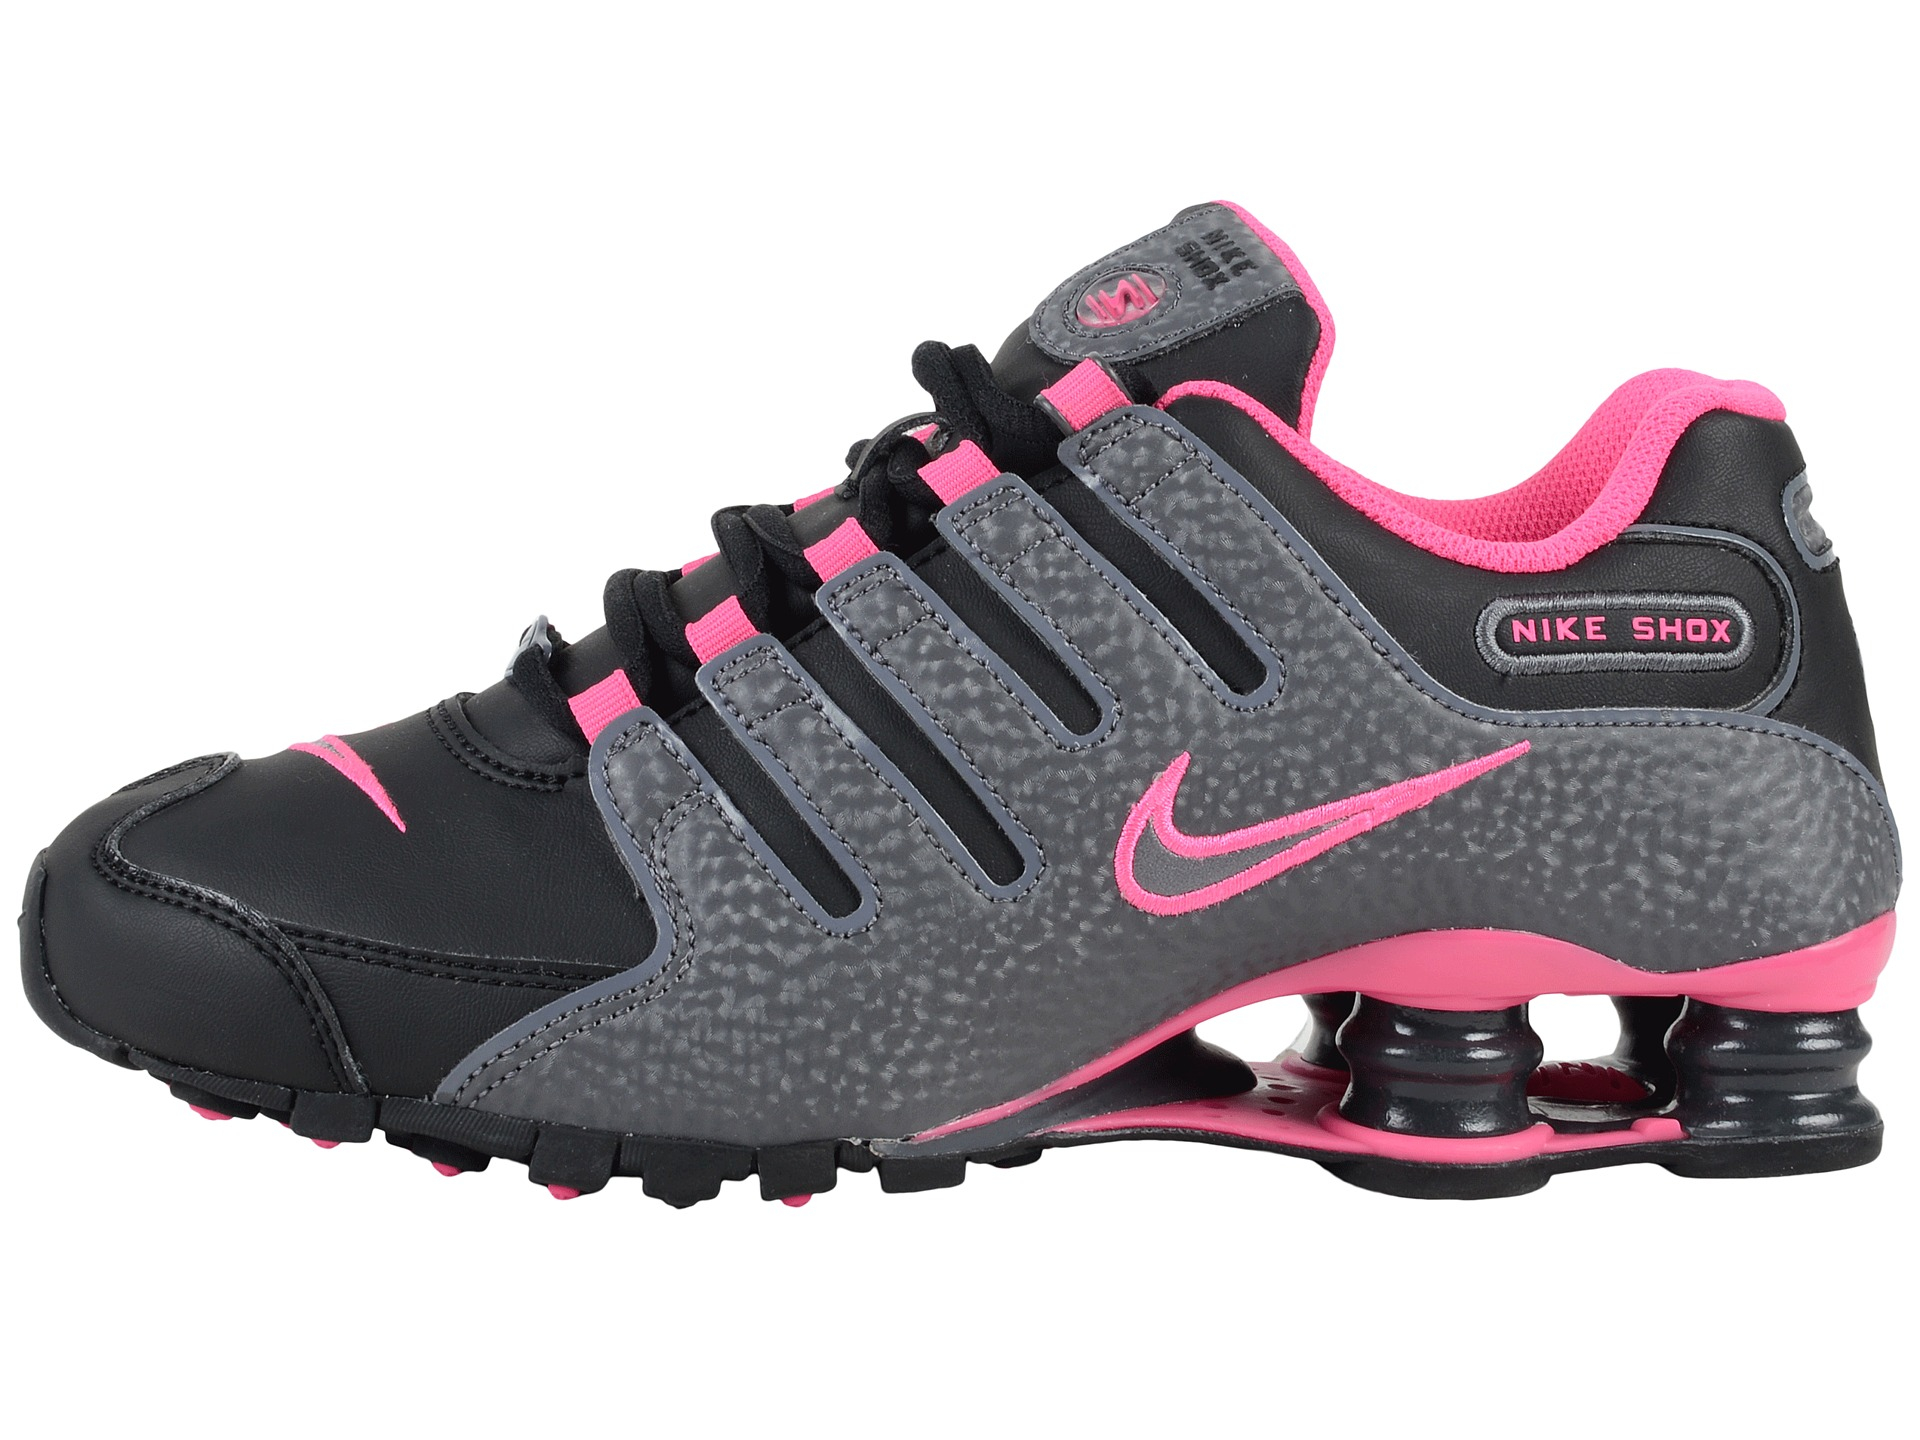 c055352ba49493 ... womens shoes sale 20570 d2da7  shop lyst nike shox nz in pink 369b5  a79d7